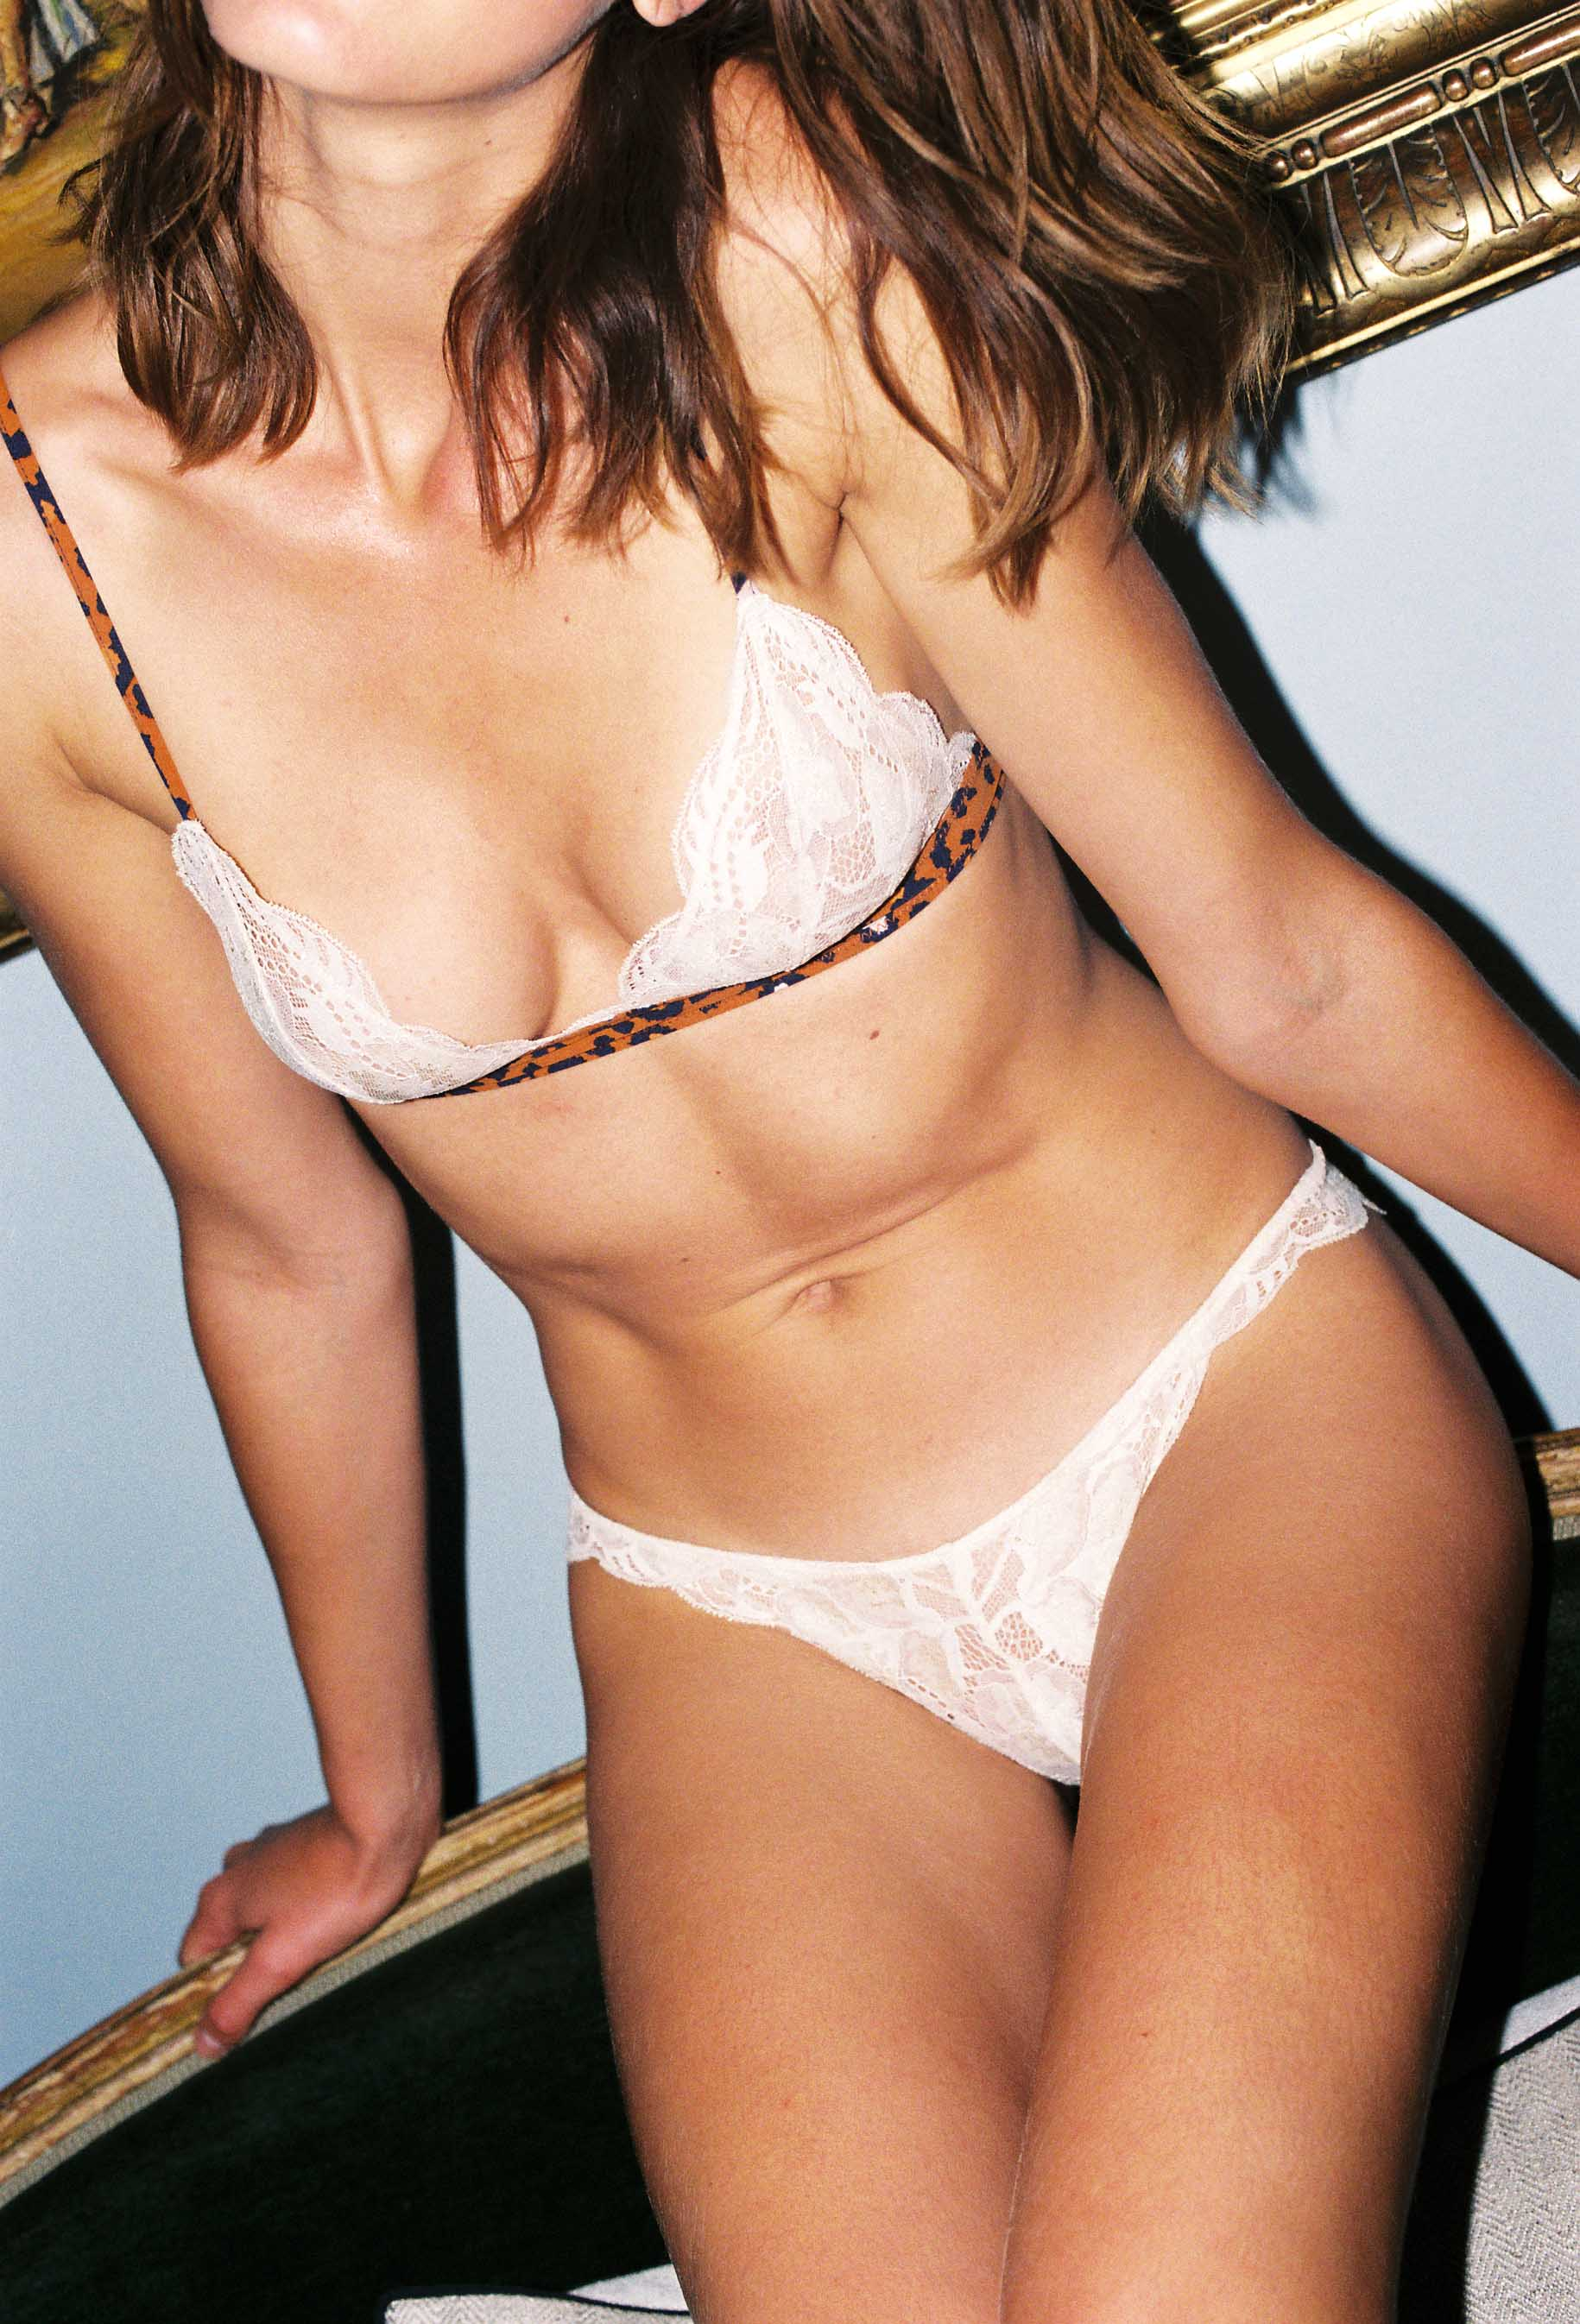 lingerie bra without underwires Spice Mush 32 € Girls In Paris photo 2